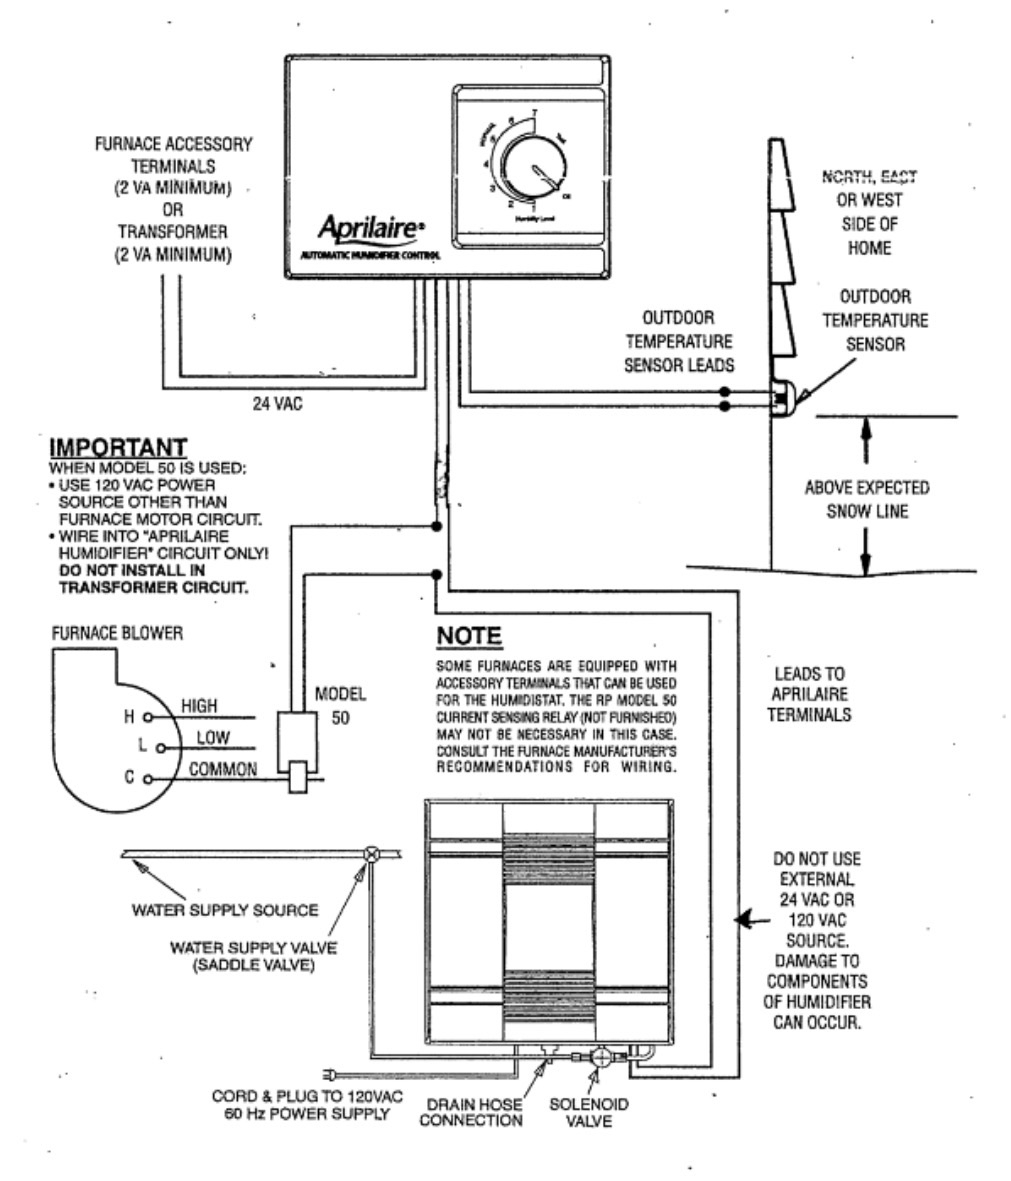 aprilaire humidifier wiring diagram Download-Aprilaire Wiring Diagram 17-k